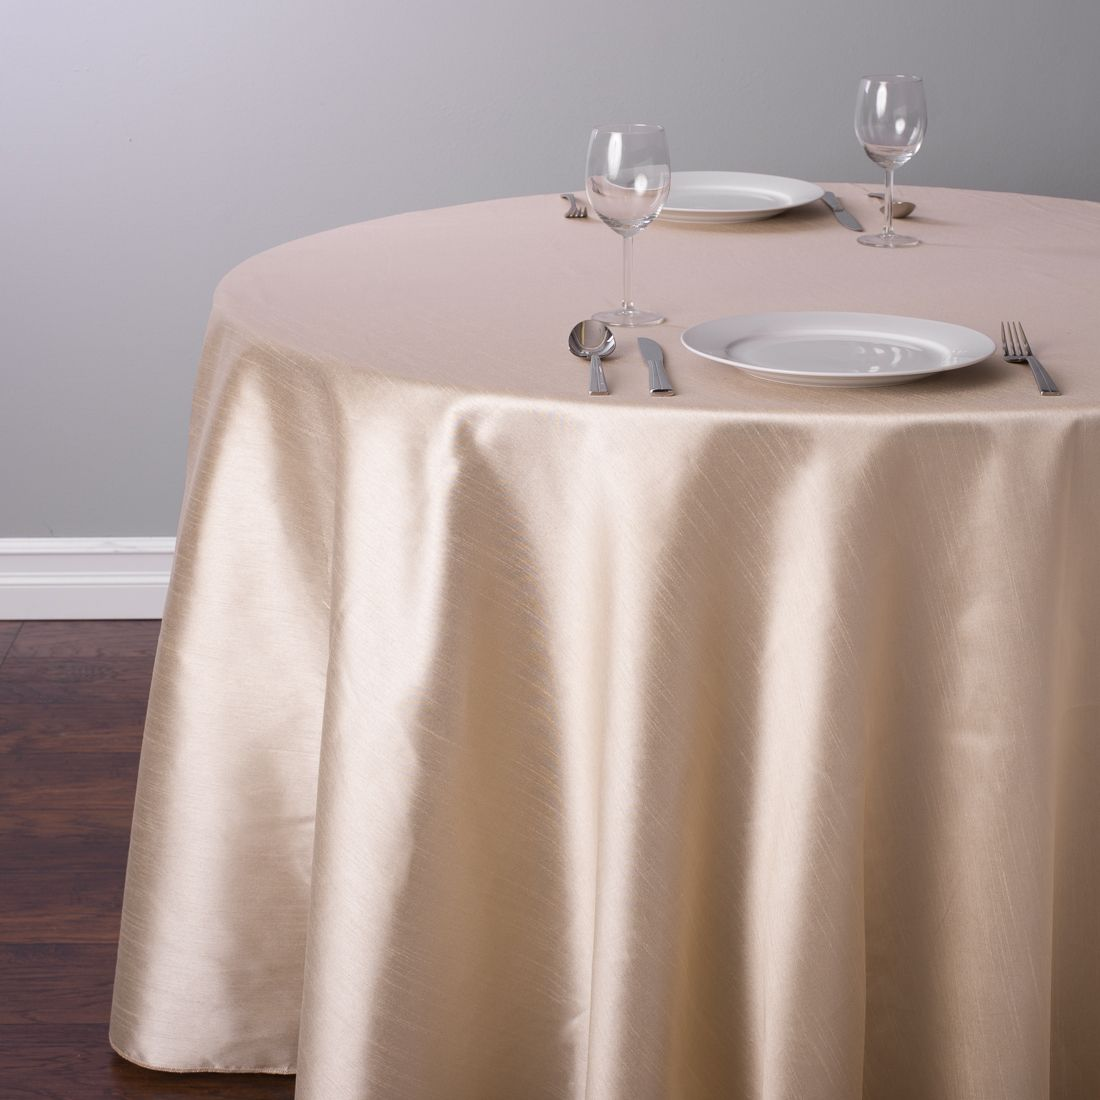 118 In Round Shantung Silk Tablecloth Beige Table Cloth White Round Tablecloths Tablecloth Rental